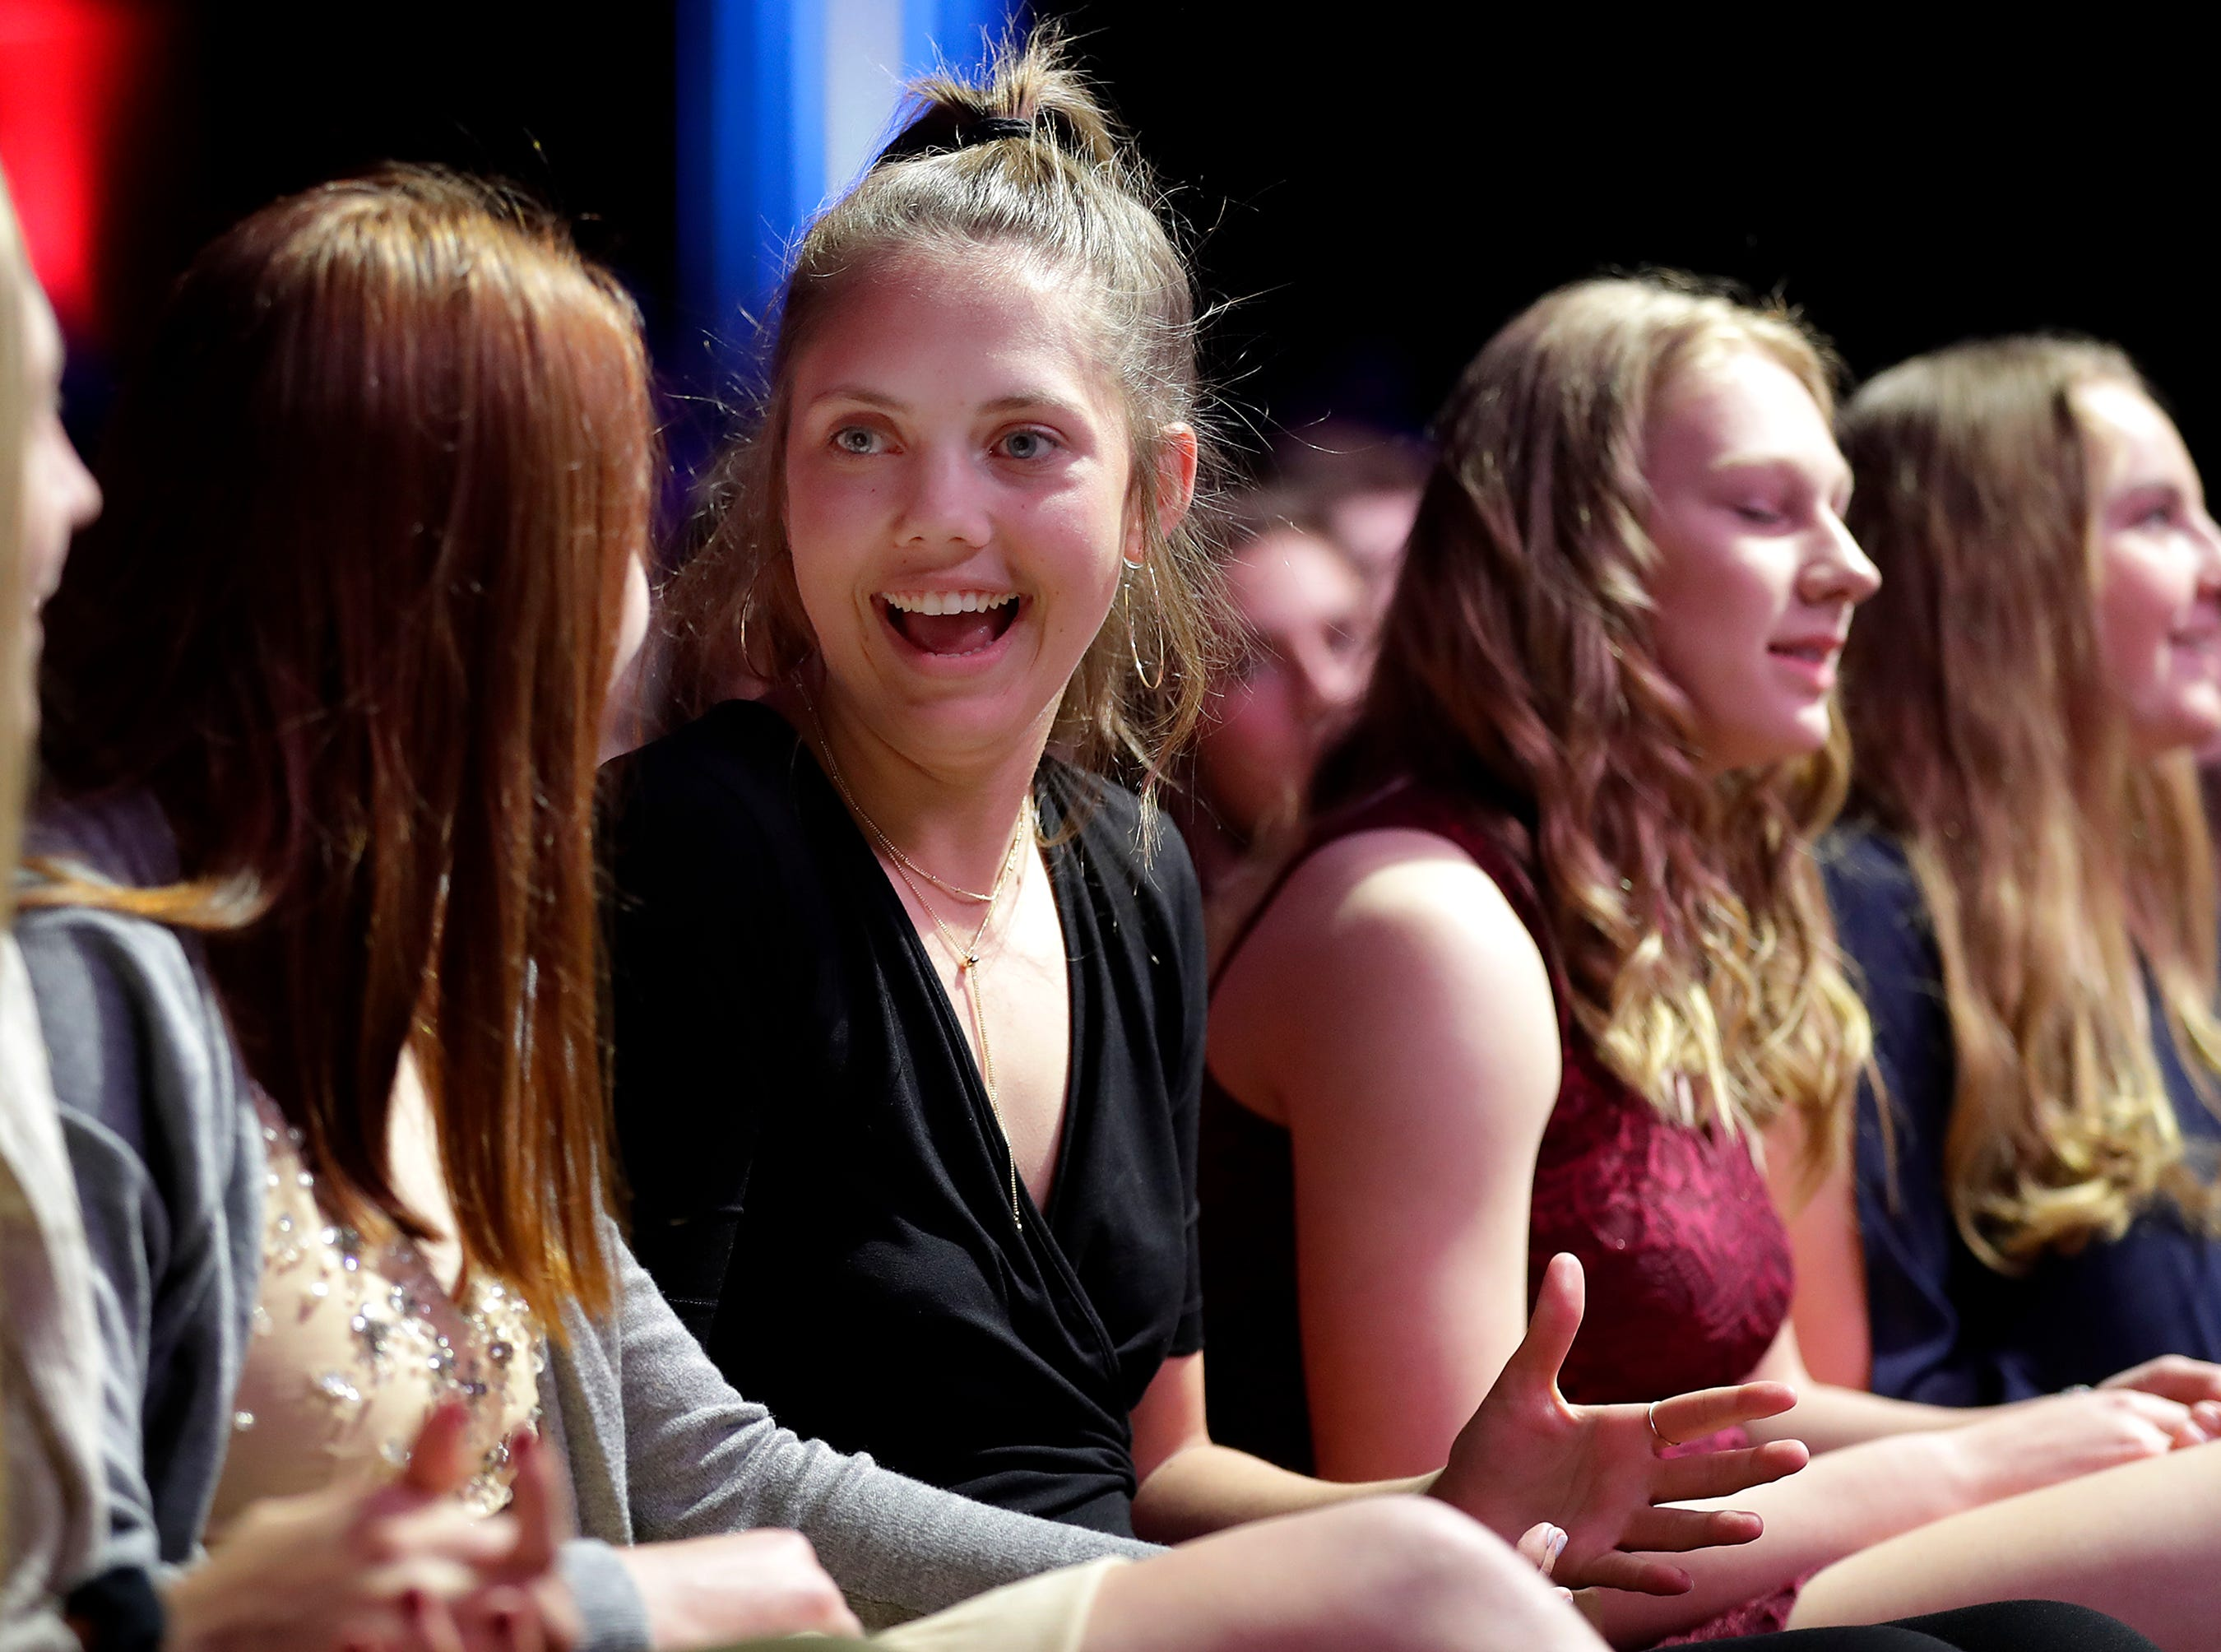 Girls Basketball Player of the Year, Bay Port's Emma Nagel during the Wisconsin High School Sports Awards show at the Fox Cities Performing Arts Center on Wednesday, May 8, 2019, in Appleton, Wis. Olympic champion Michael Phelps was the guest speaker. The annual event was presented by USA TODAY NETWORK-Wisconsin.  Wm. Glasheen/USA TODAY NETWORK-Wisconsin.